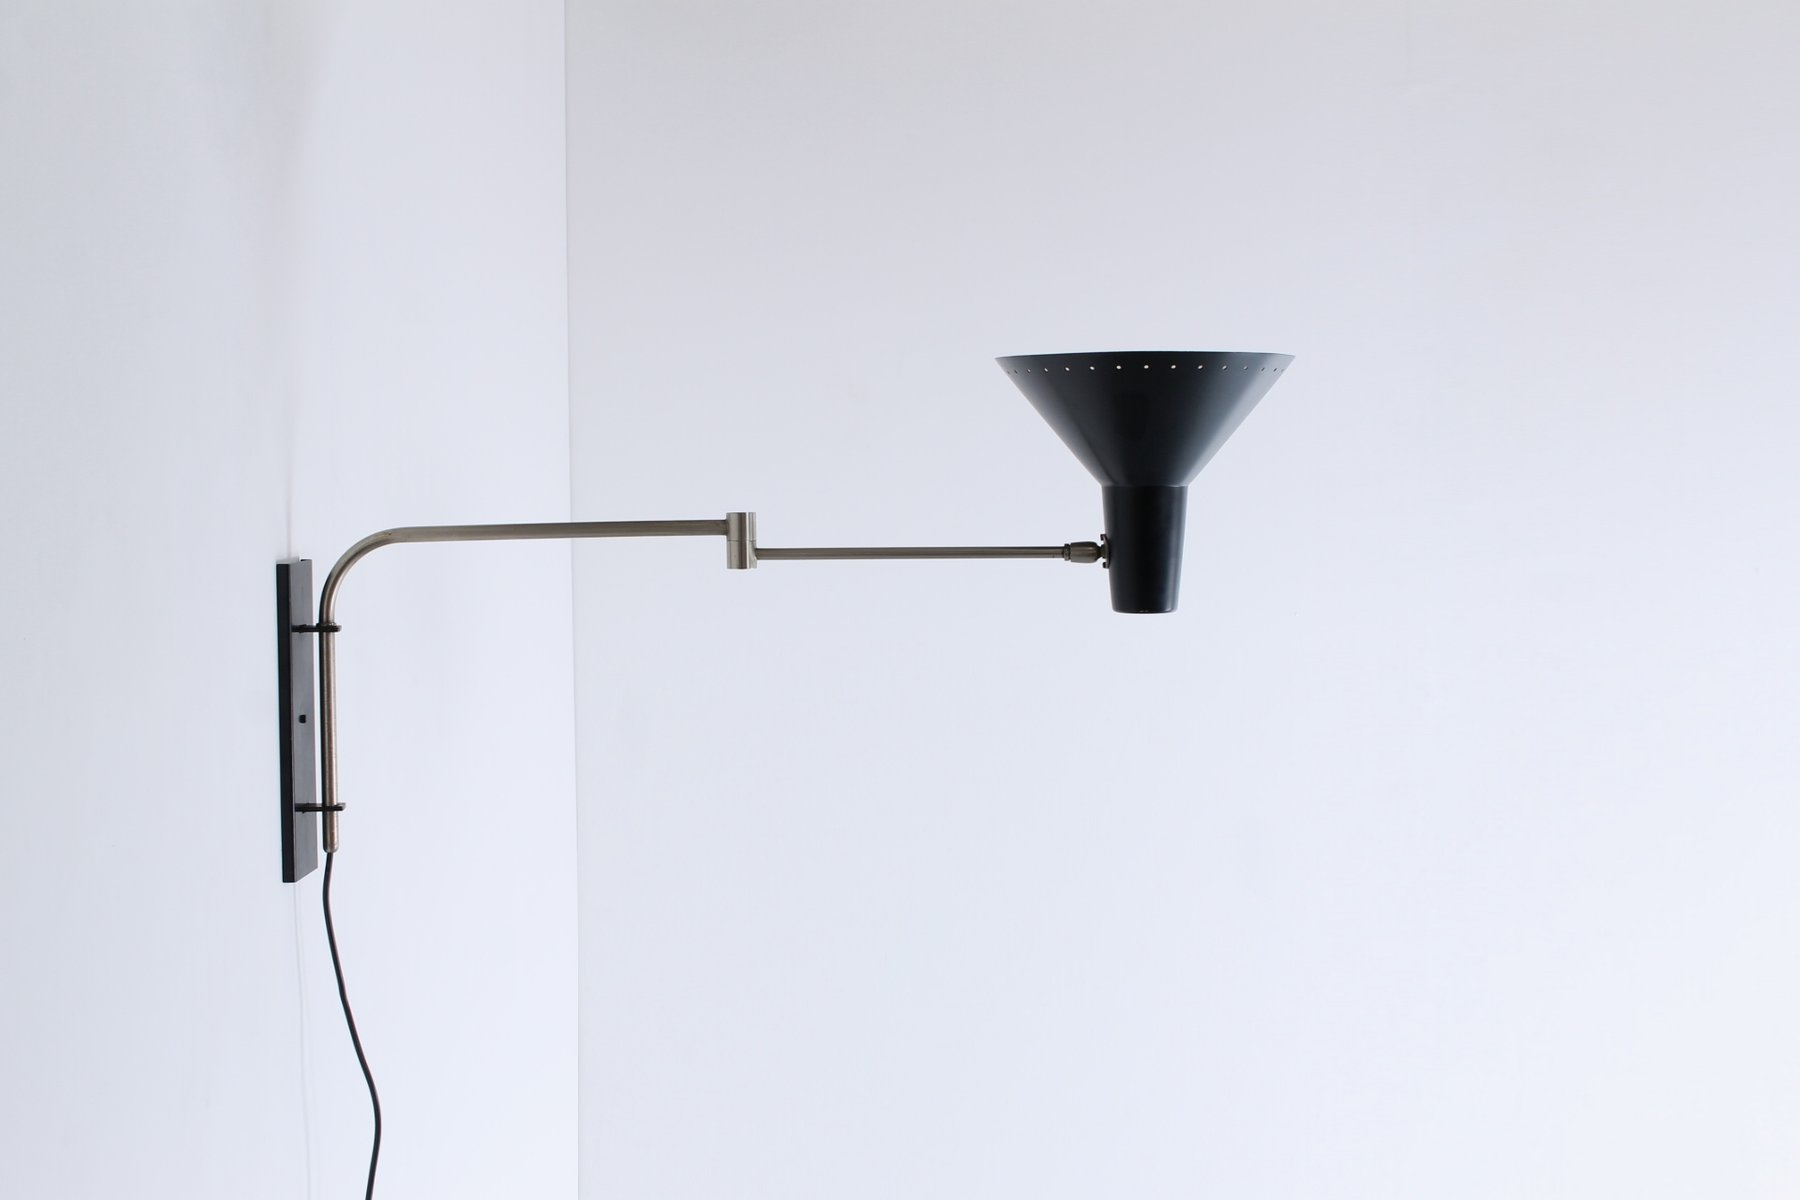 Wall Mounted Arm Lights : Wall Mounted Swinging Arm Industrial Light from Artimeta, 1950s for sale at Pamono